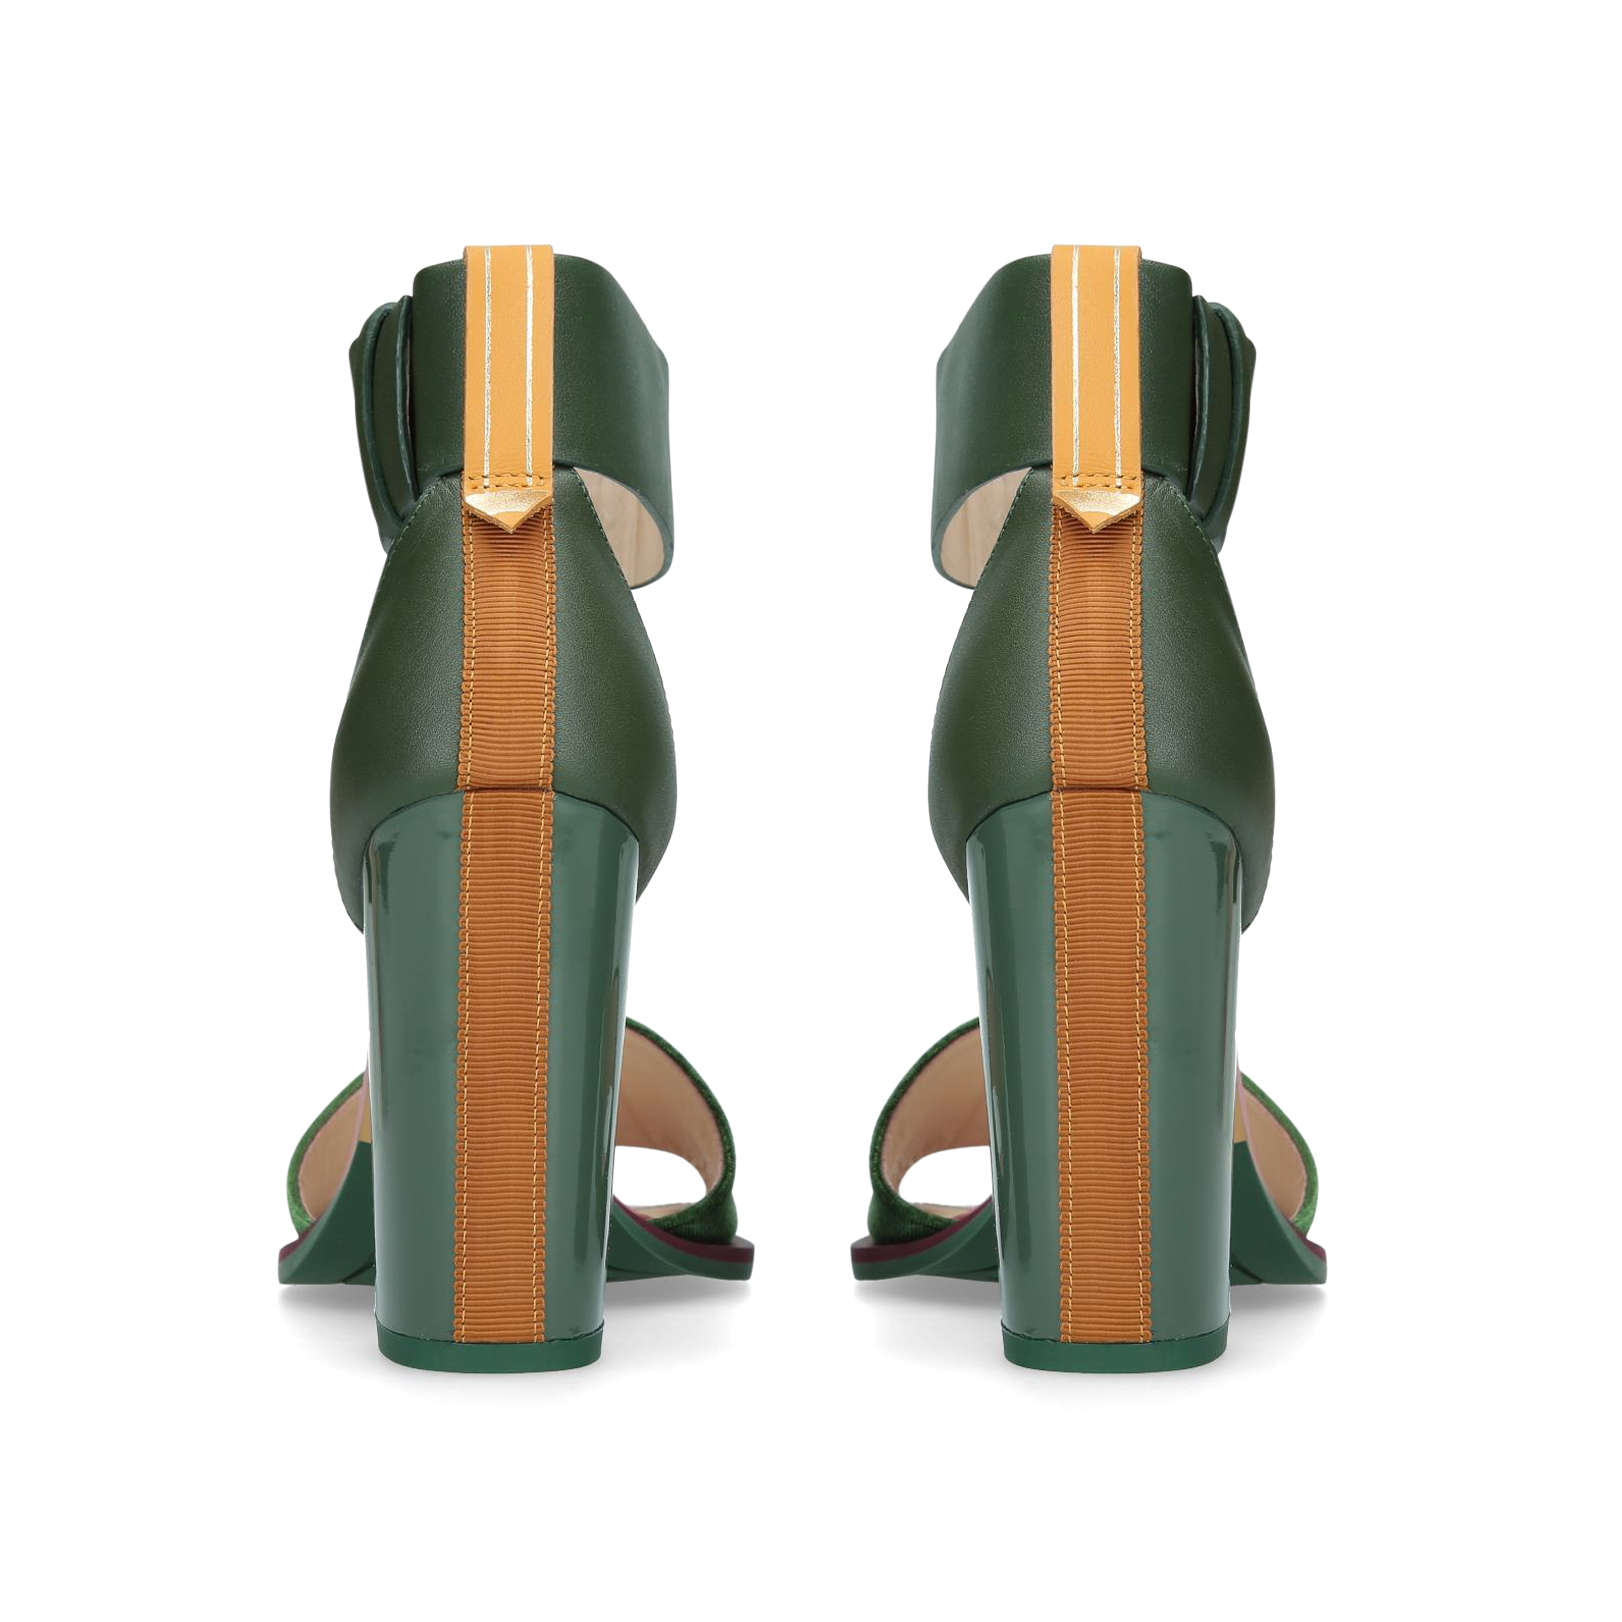 2007aa2e3ab2 ERRITA Errita High Heel +60Mm Occasion Ted Baker Green by TED BAKER